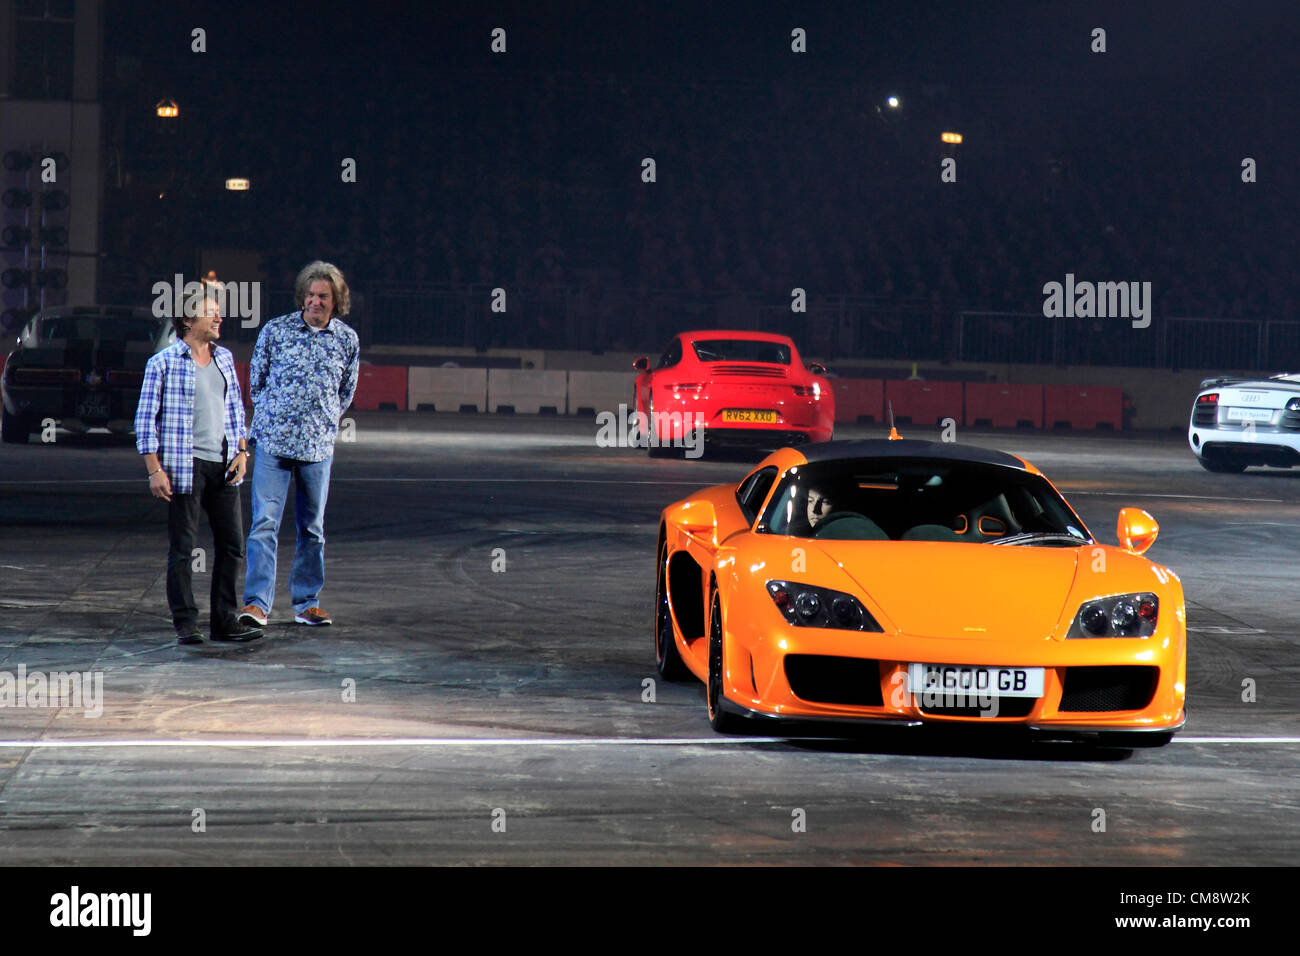 Image from the Top Gear Live Show at the National Exhibition Centre Birmingham England 28th October 2012 - Stock Image